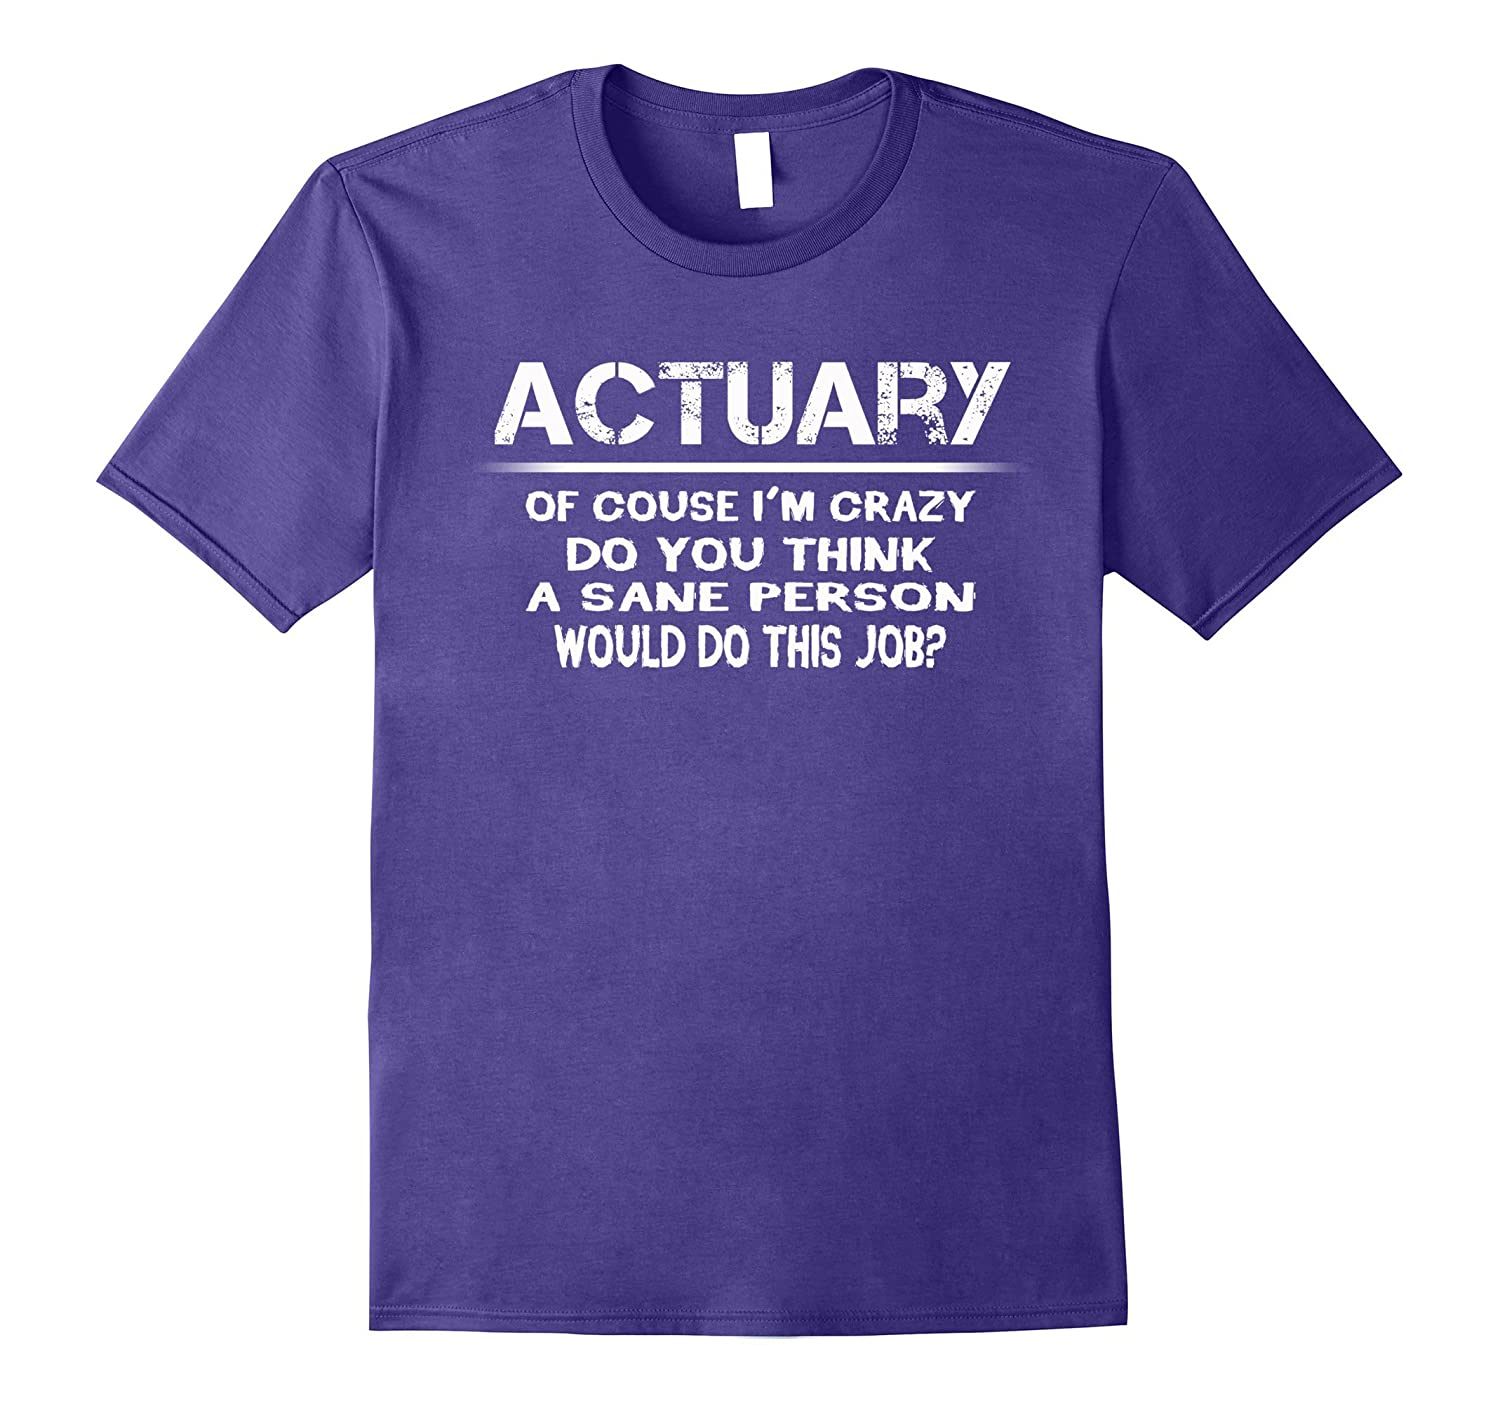 Actuary im crazy the sane people would do this job t-shirt-TJ